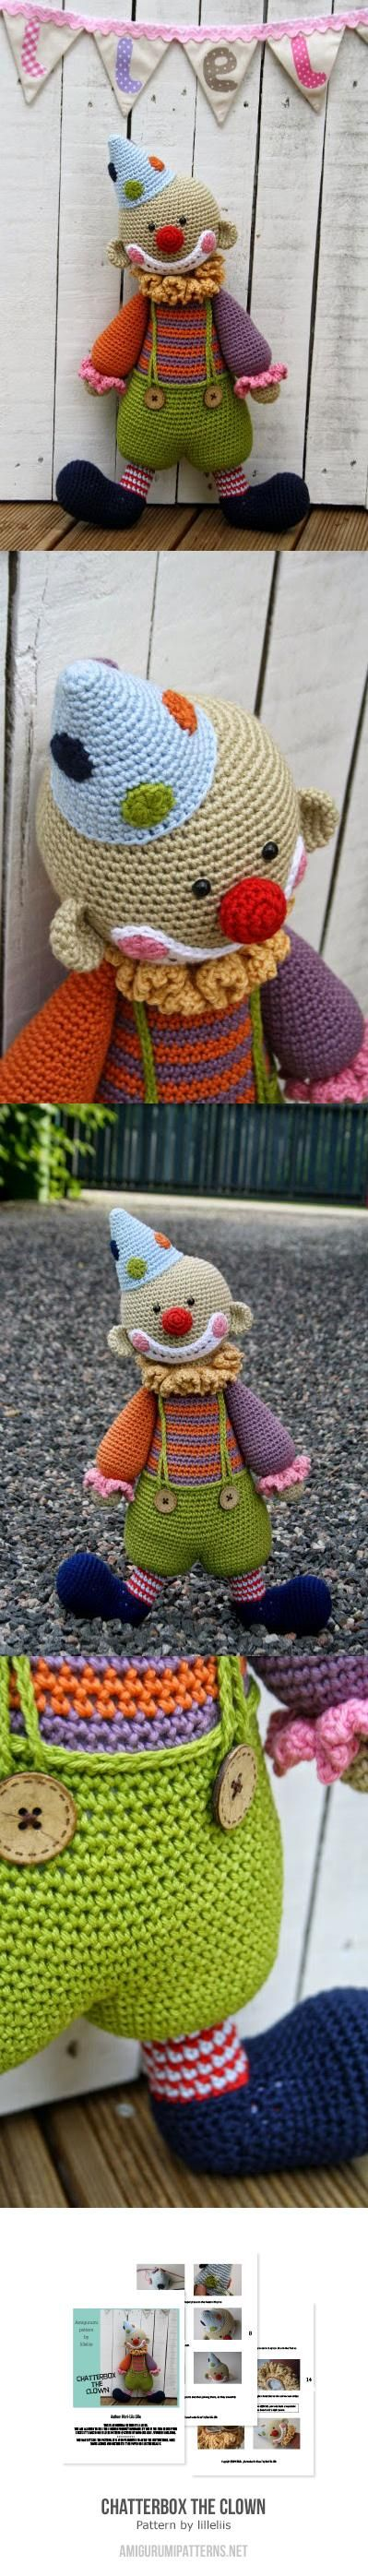 Chatterbox The Clown Amigurumi Pattern